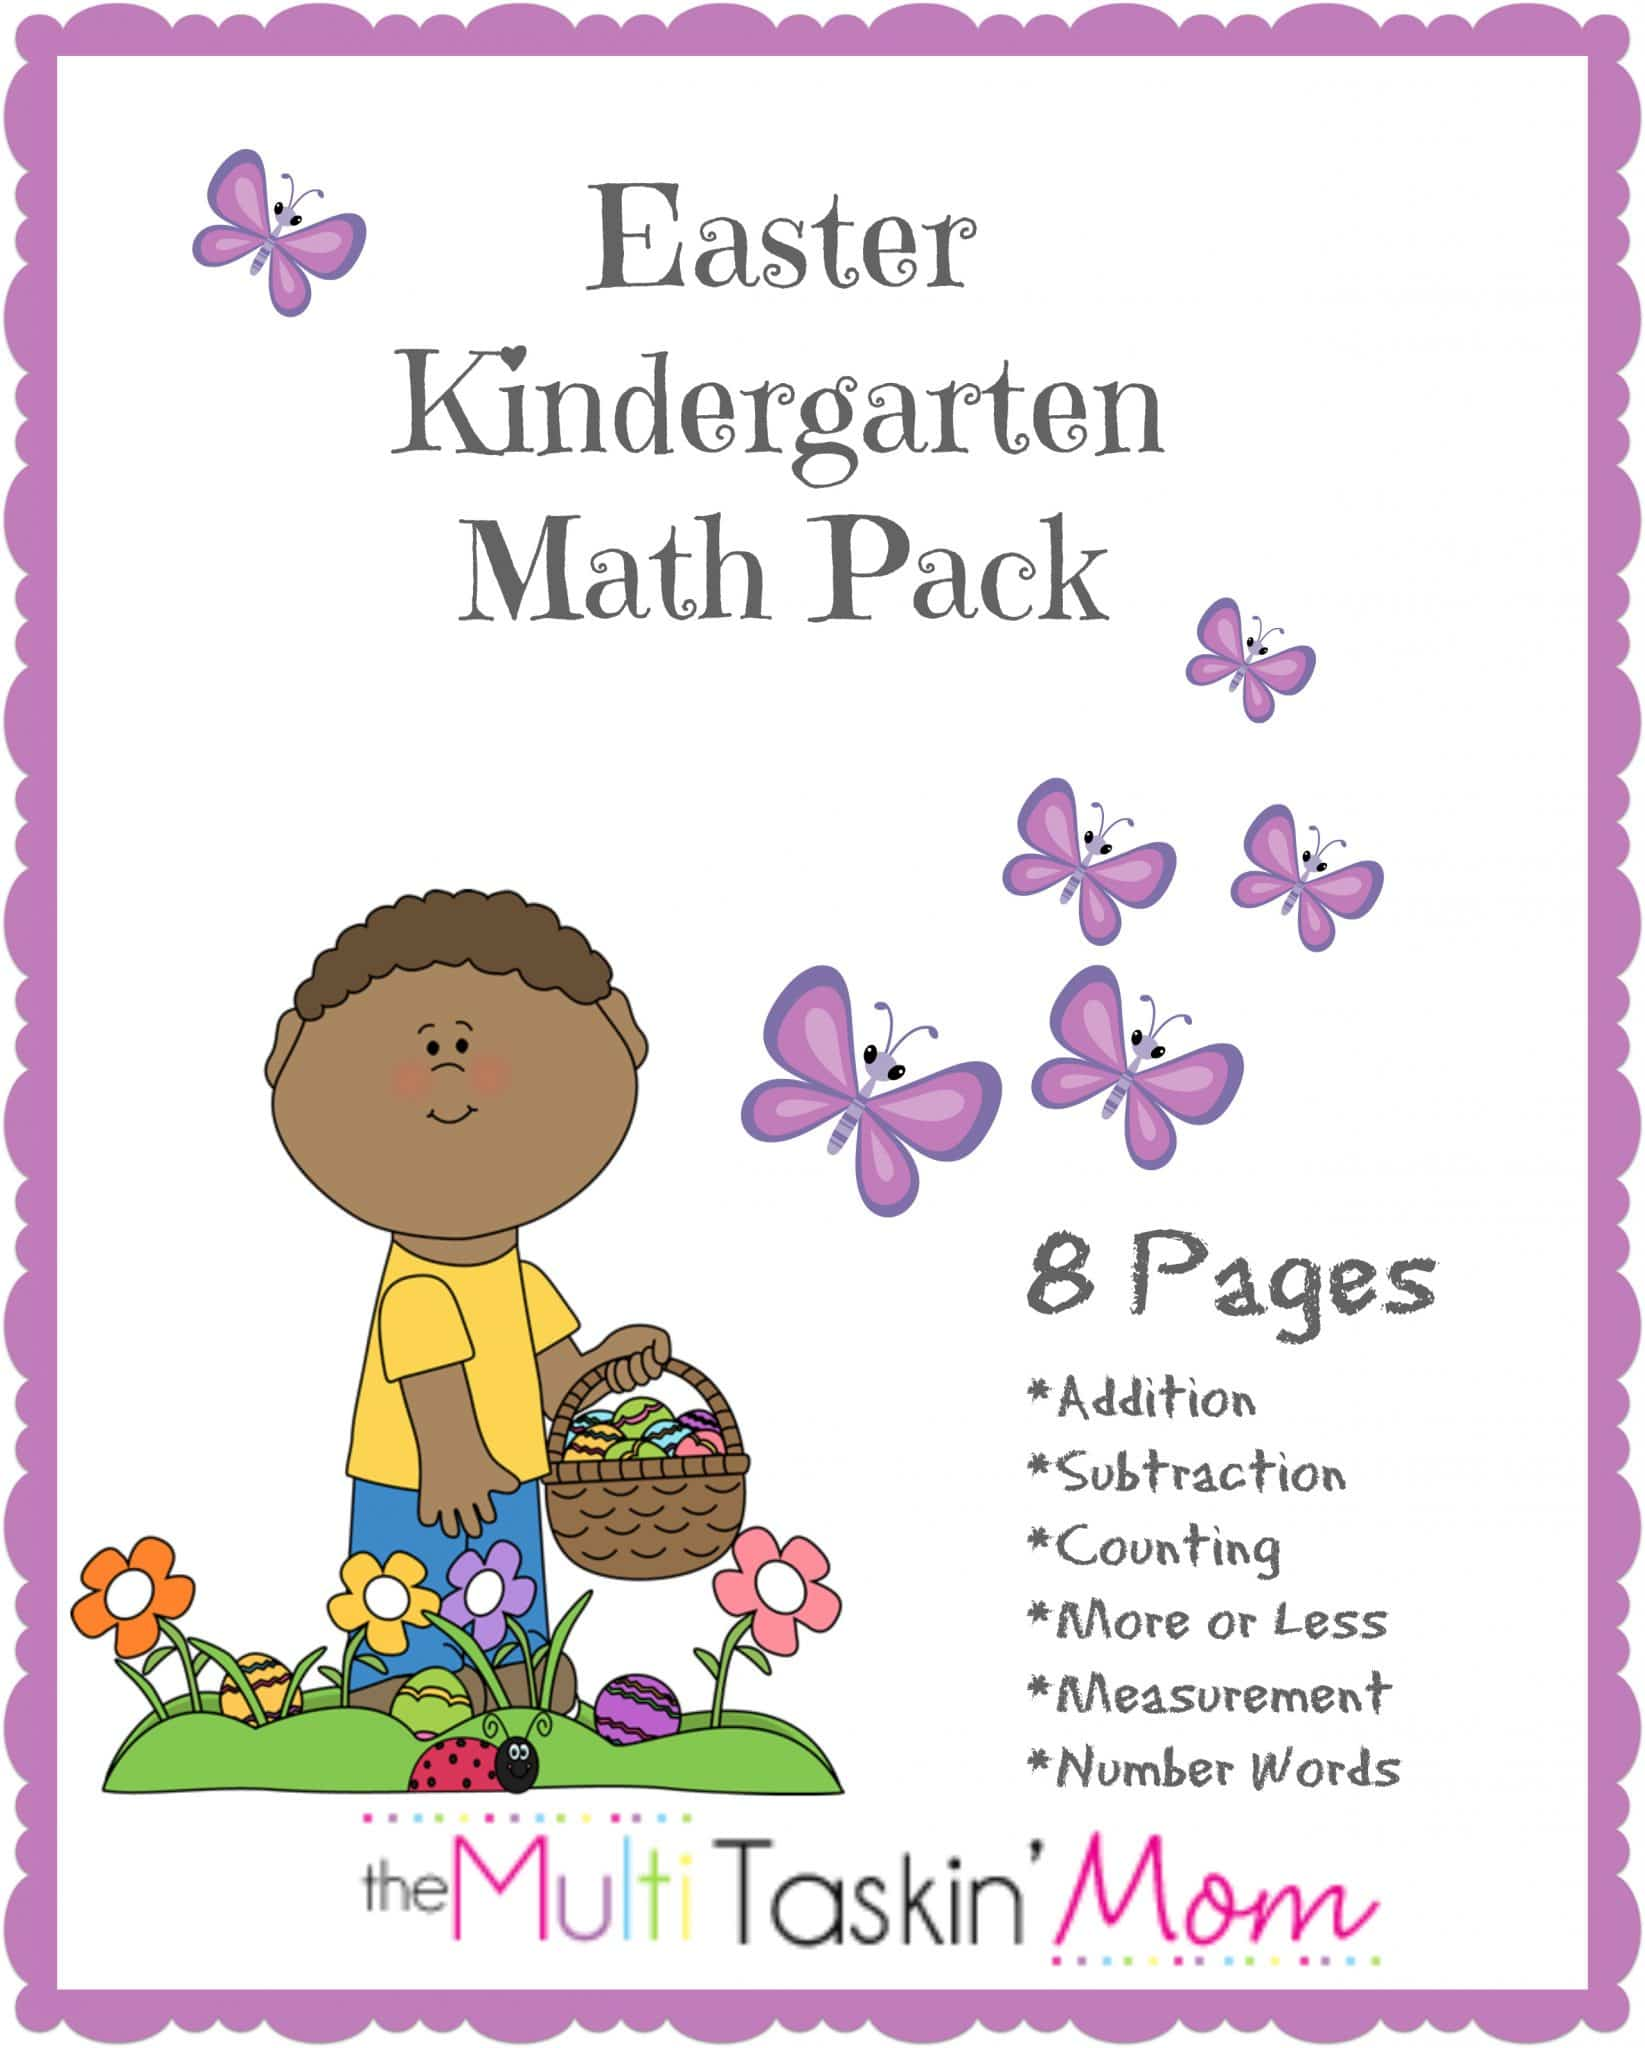 Crazyccritter Educational Freebie Easter Kindergarten